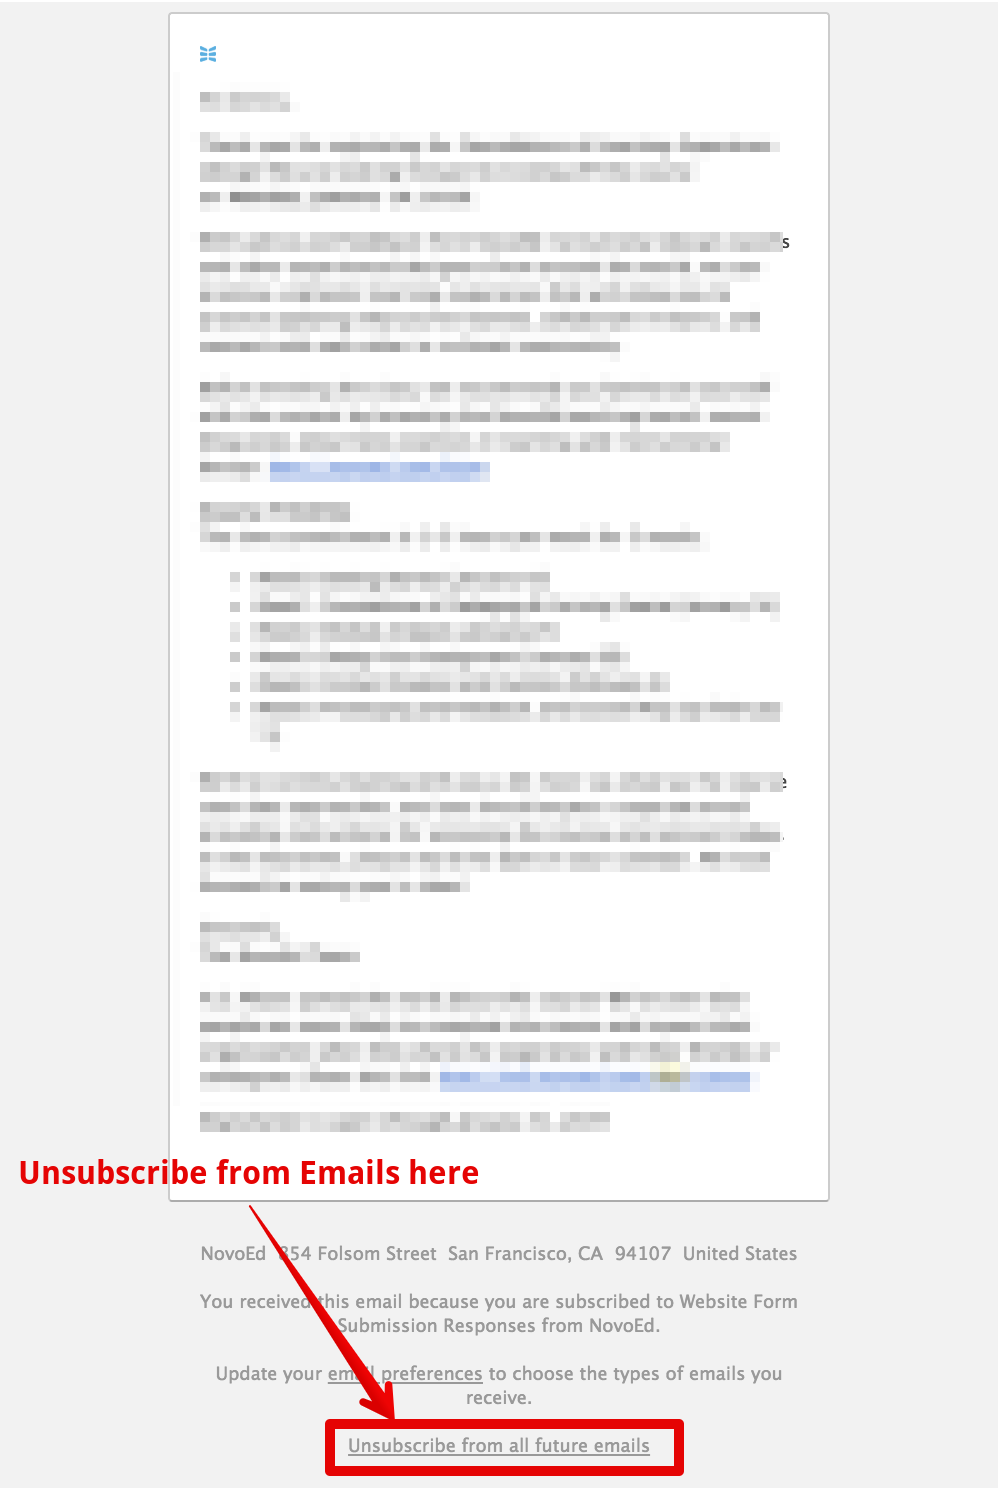 email-unsub.png